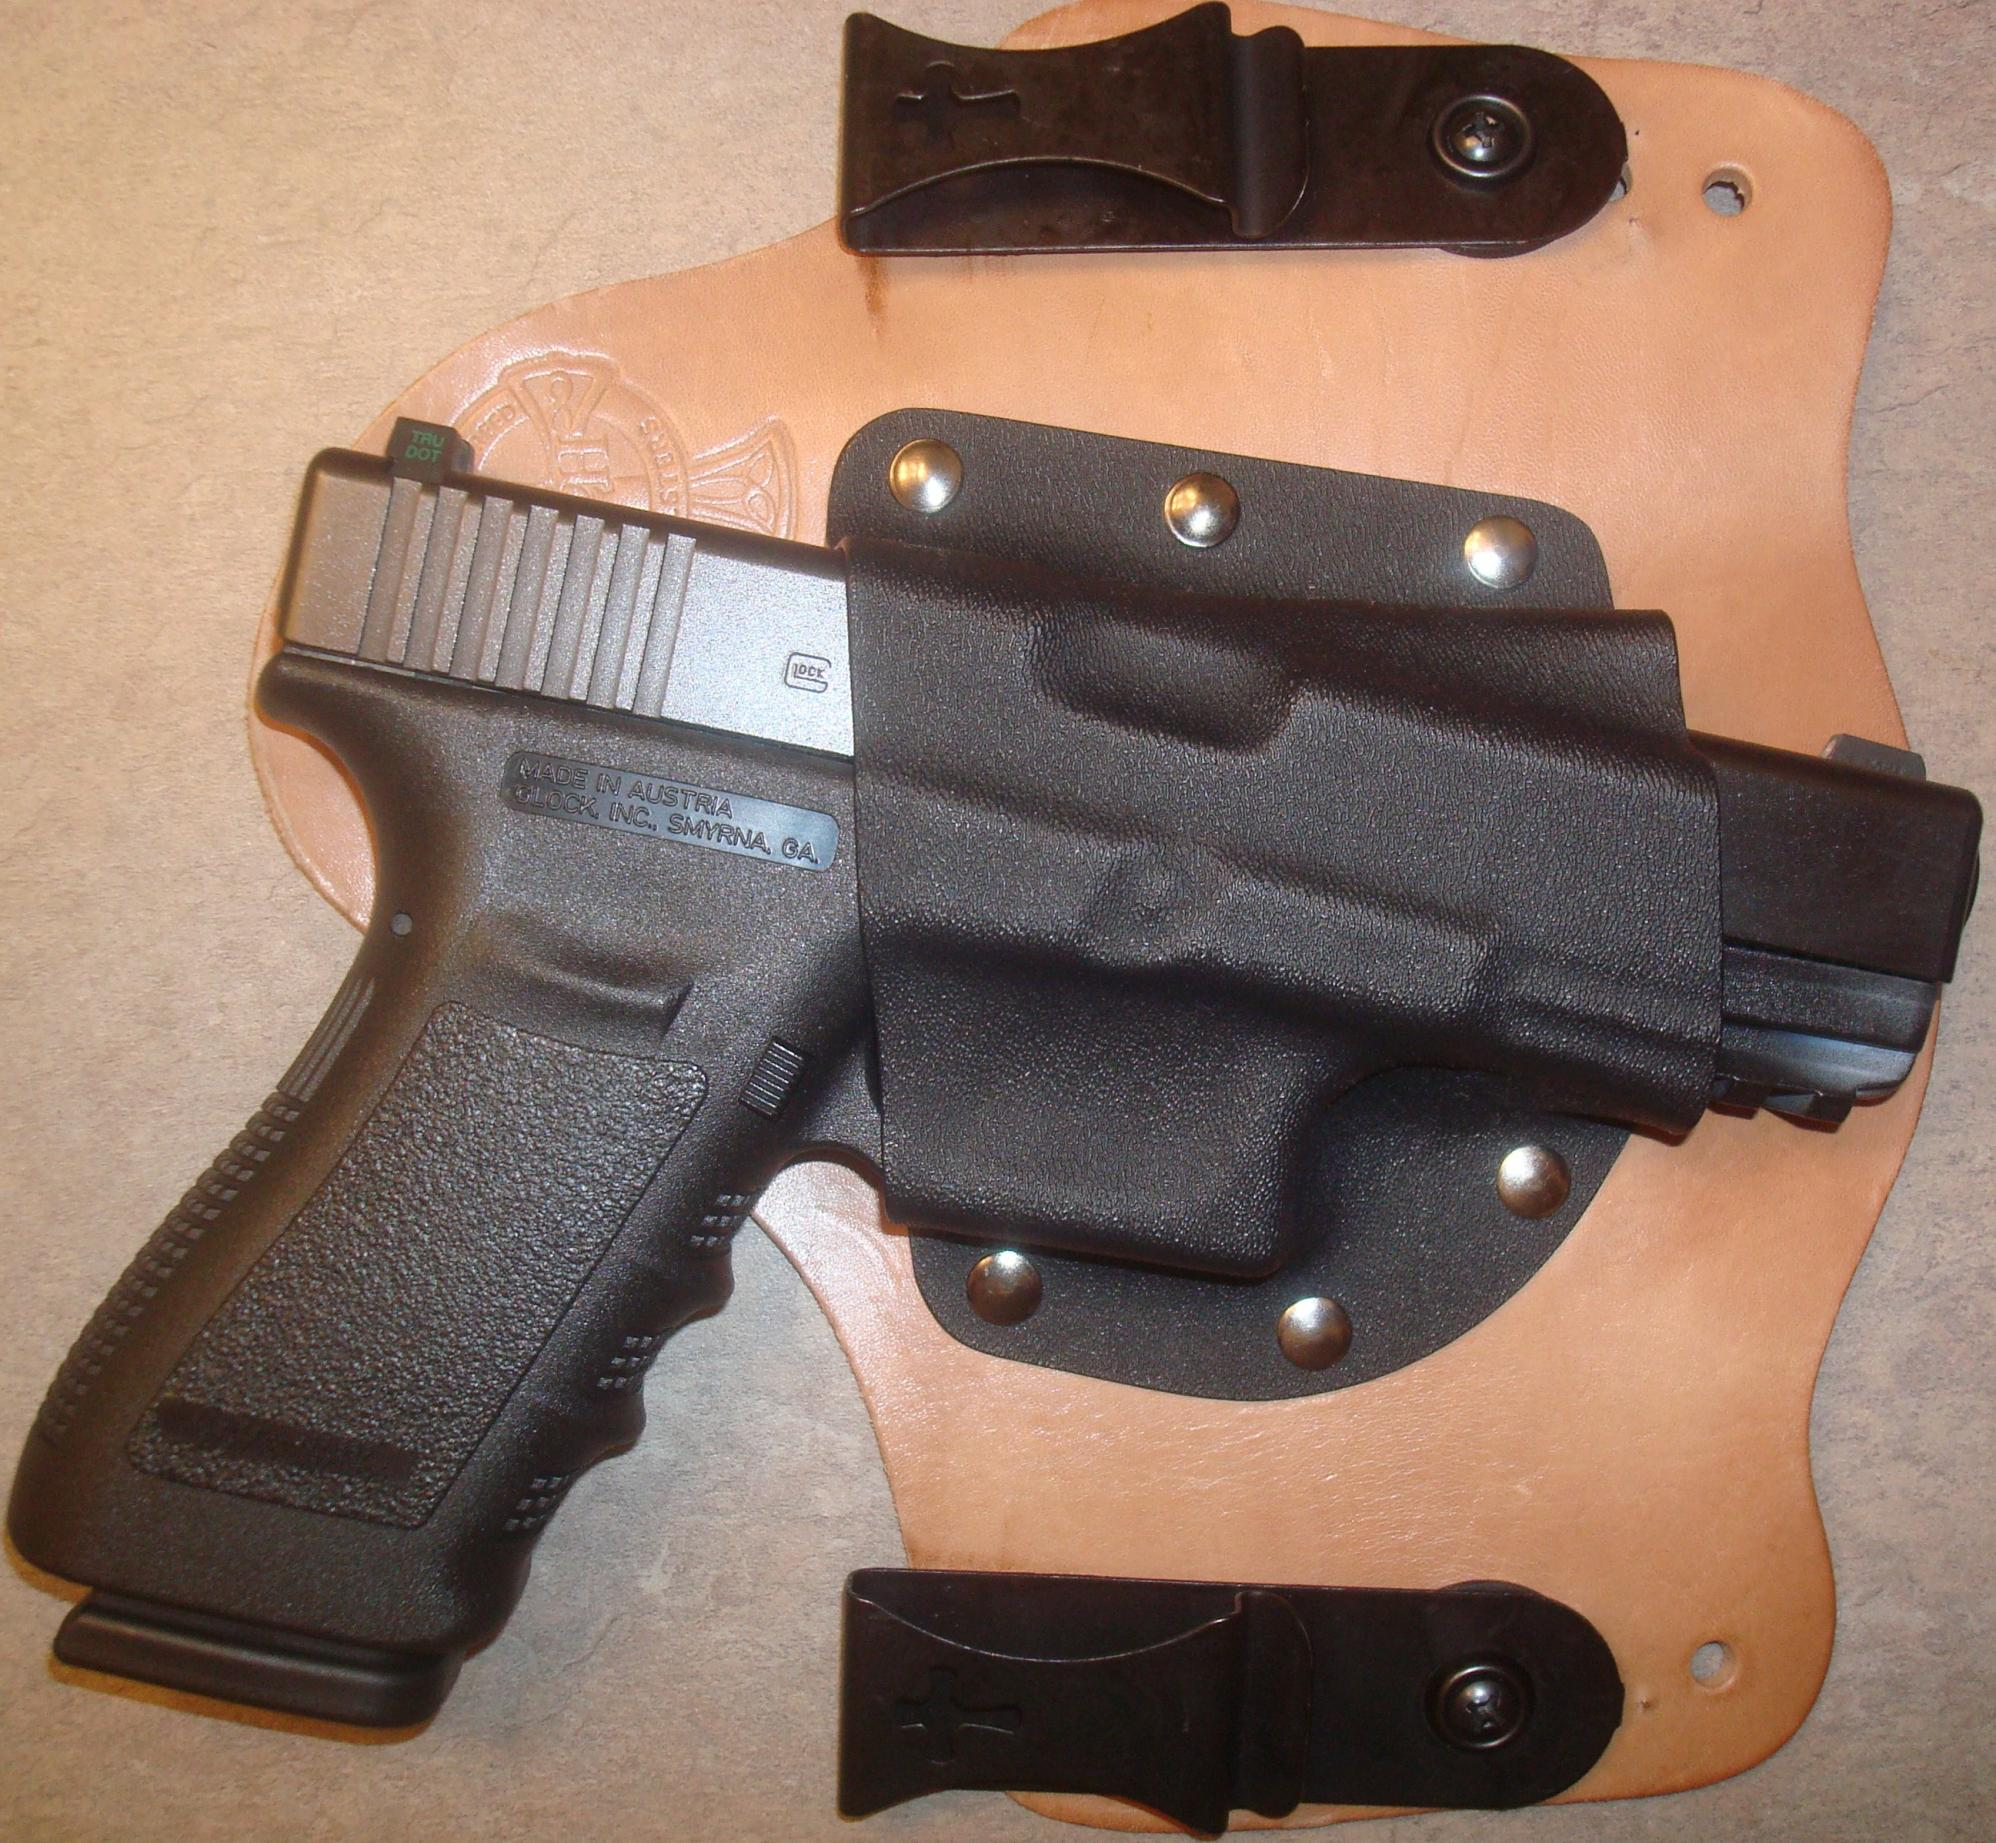 Let's See Your Pic's - How You Carry Concealed.-cindys-camera-8-09-054.jpg